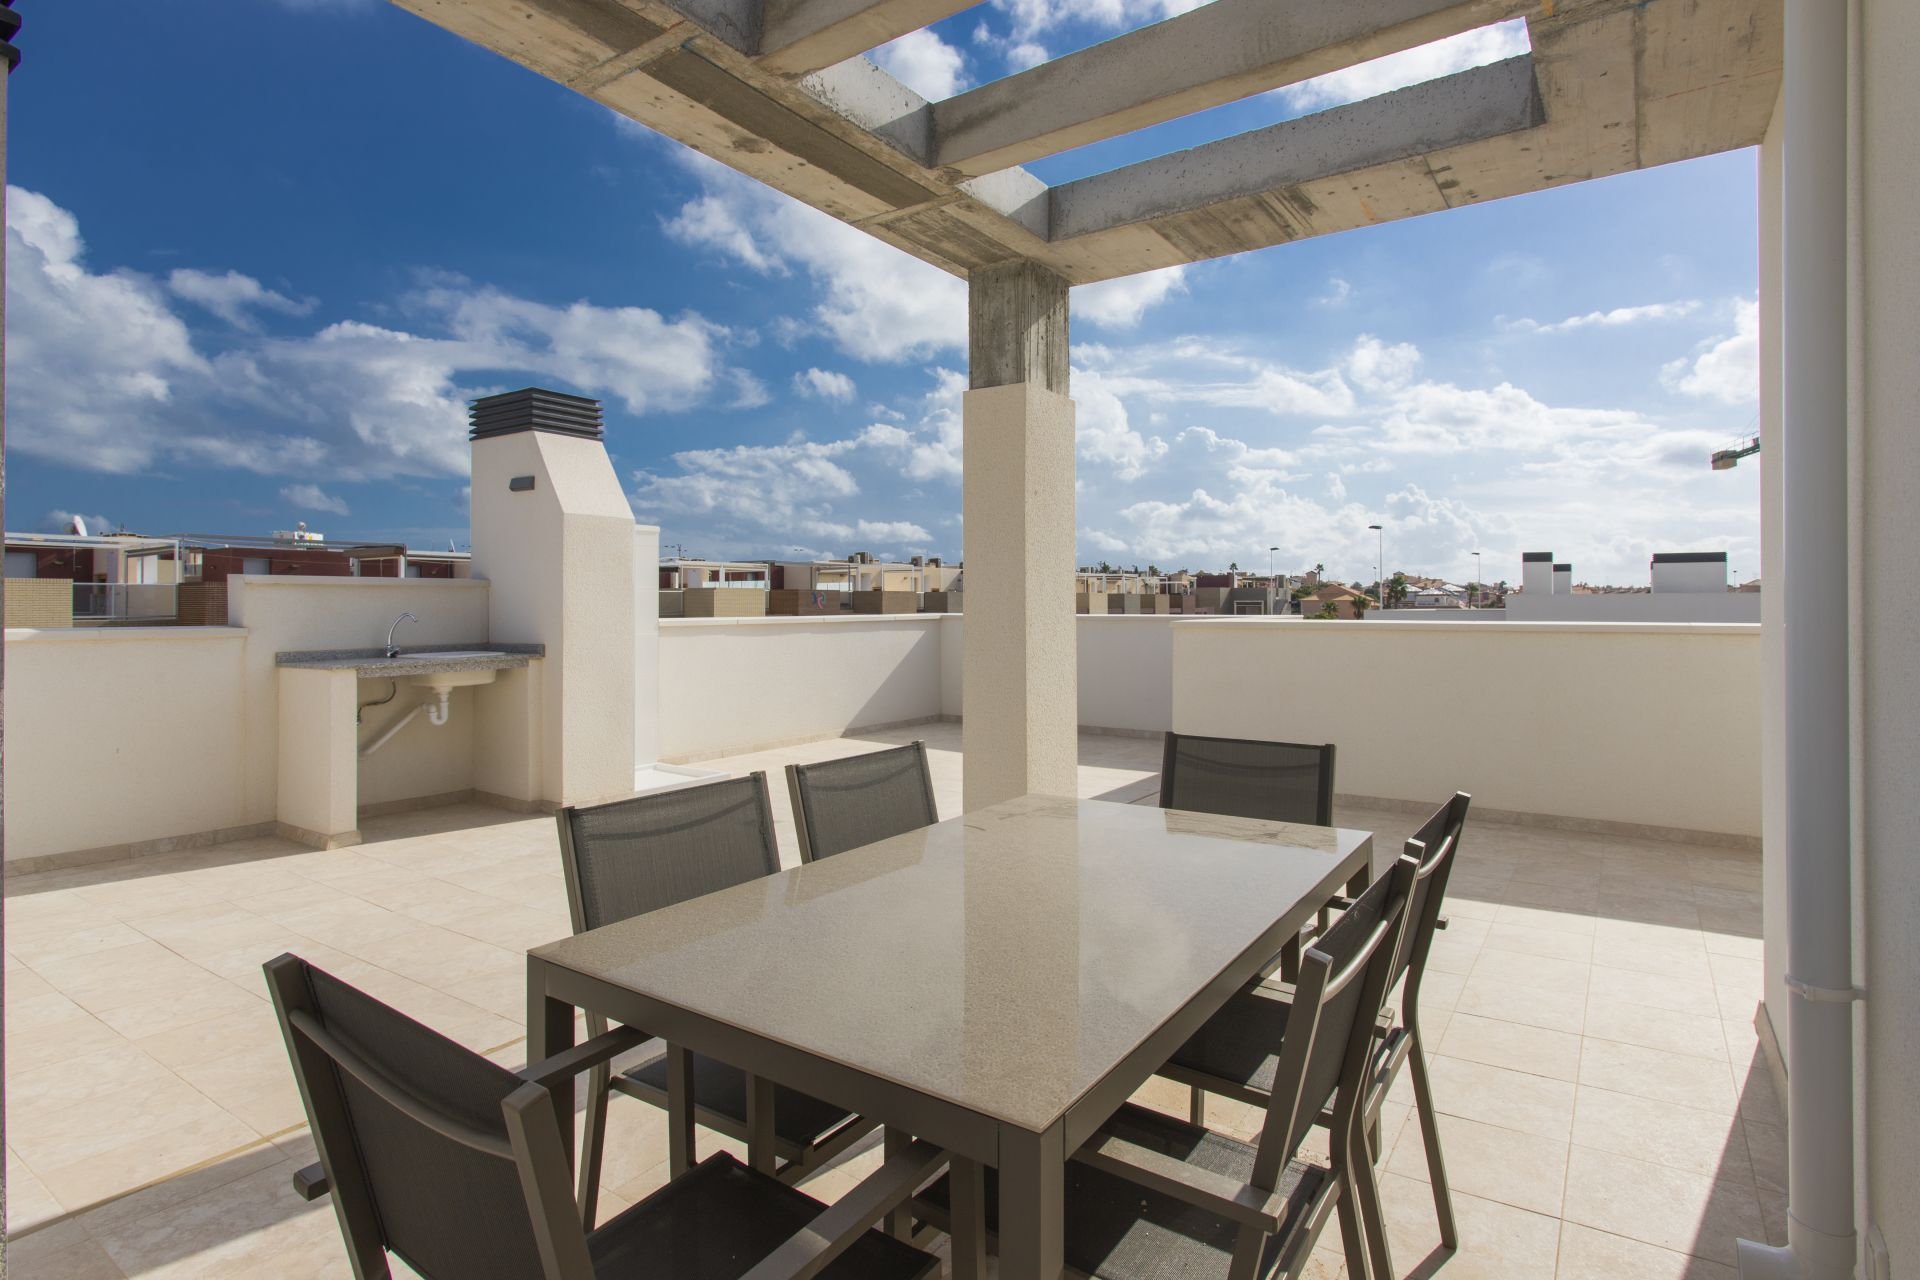 Apartment with 3 bedrooms and 3 bathrooms with solarium, Aguas Nuevas. 10